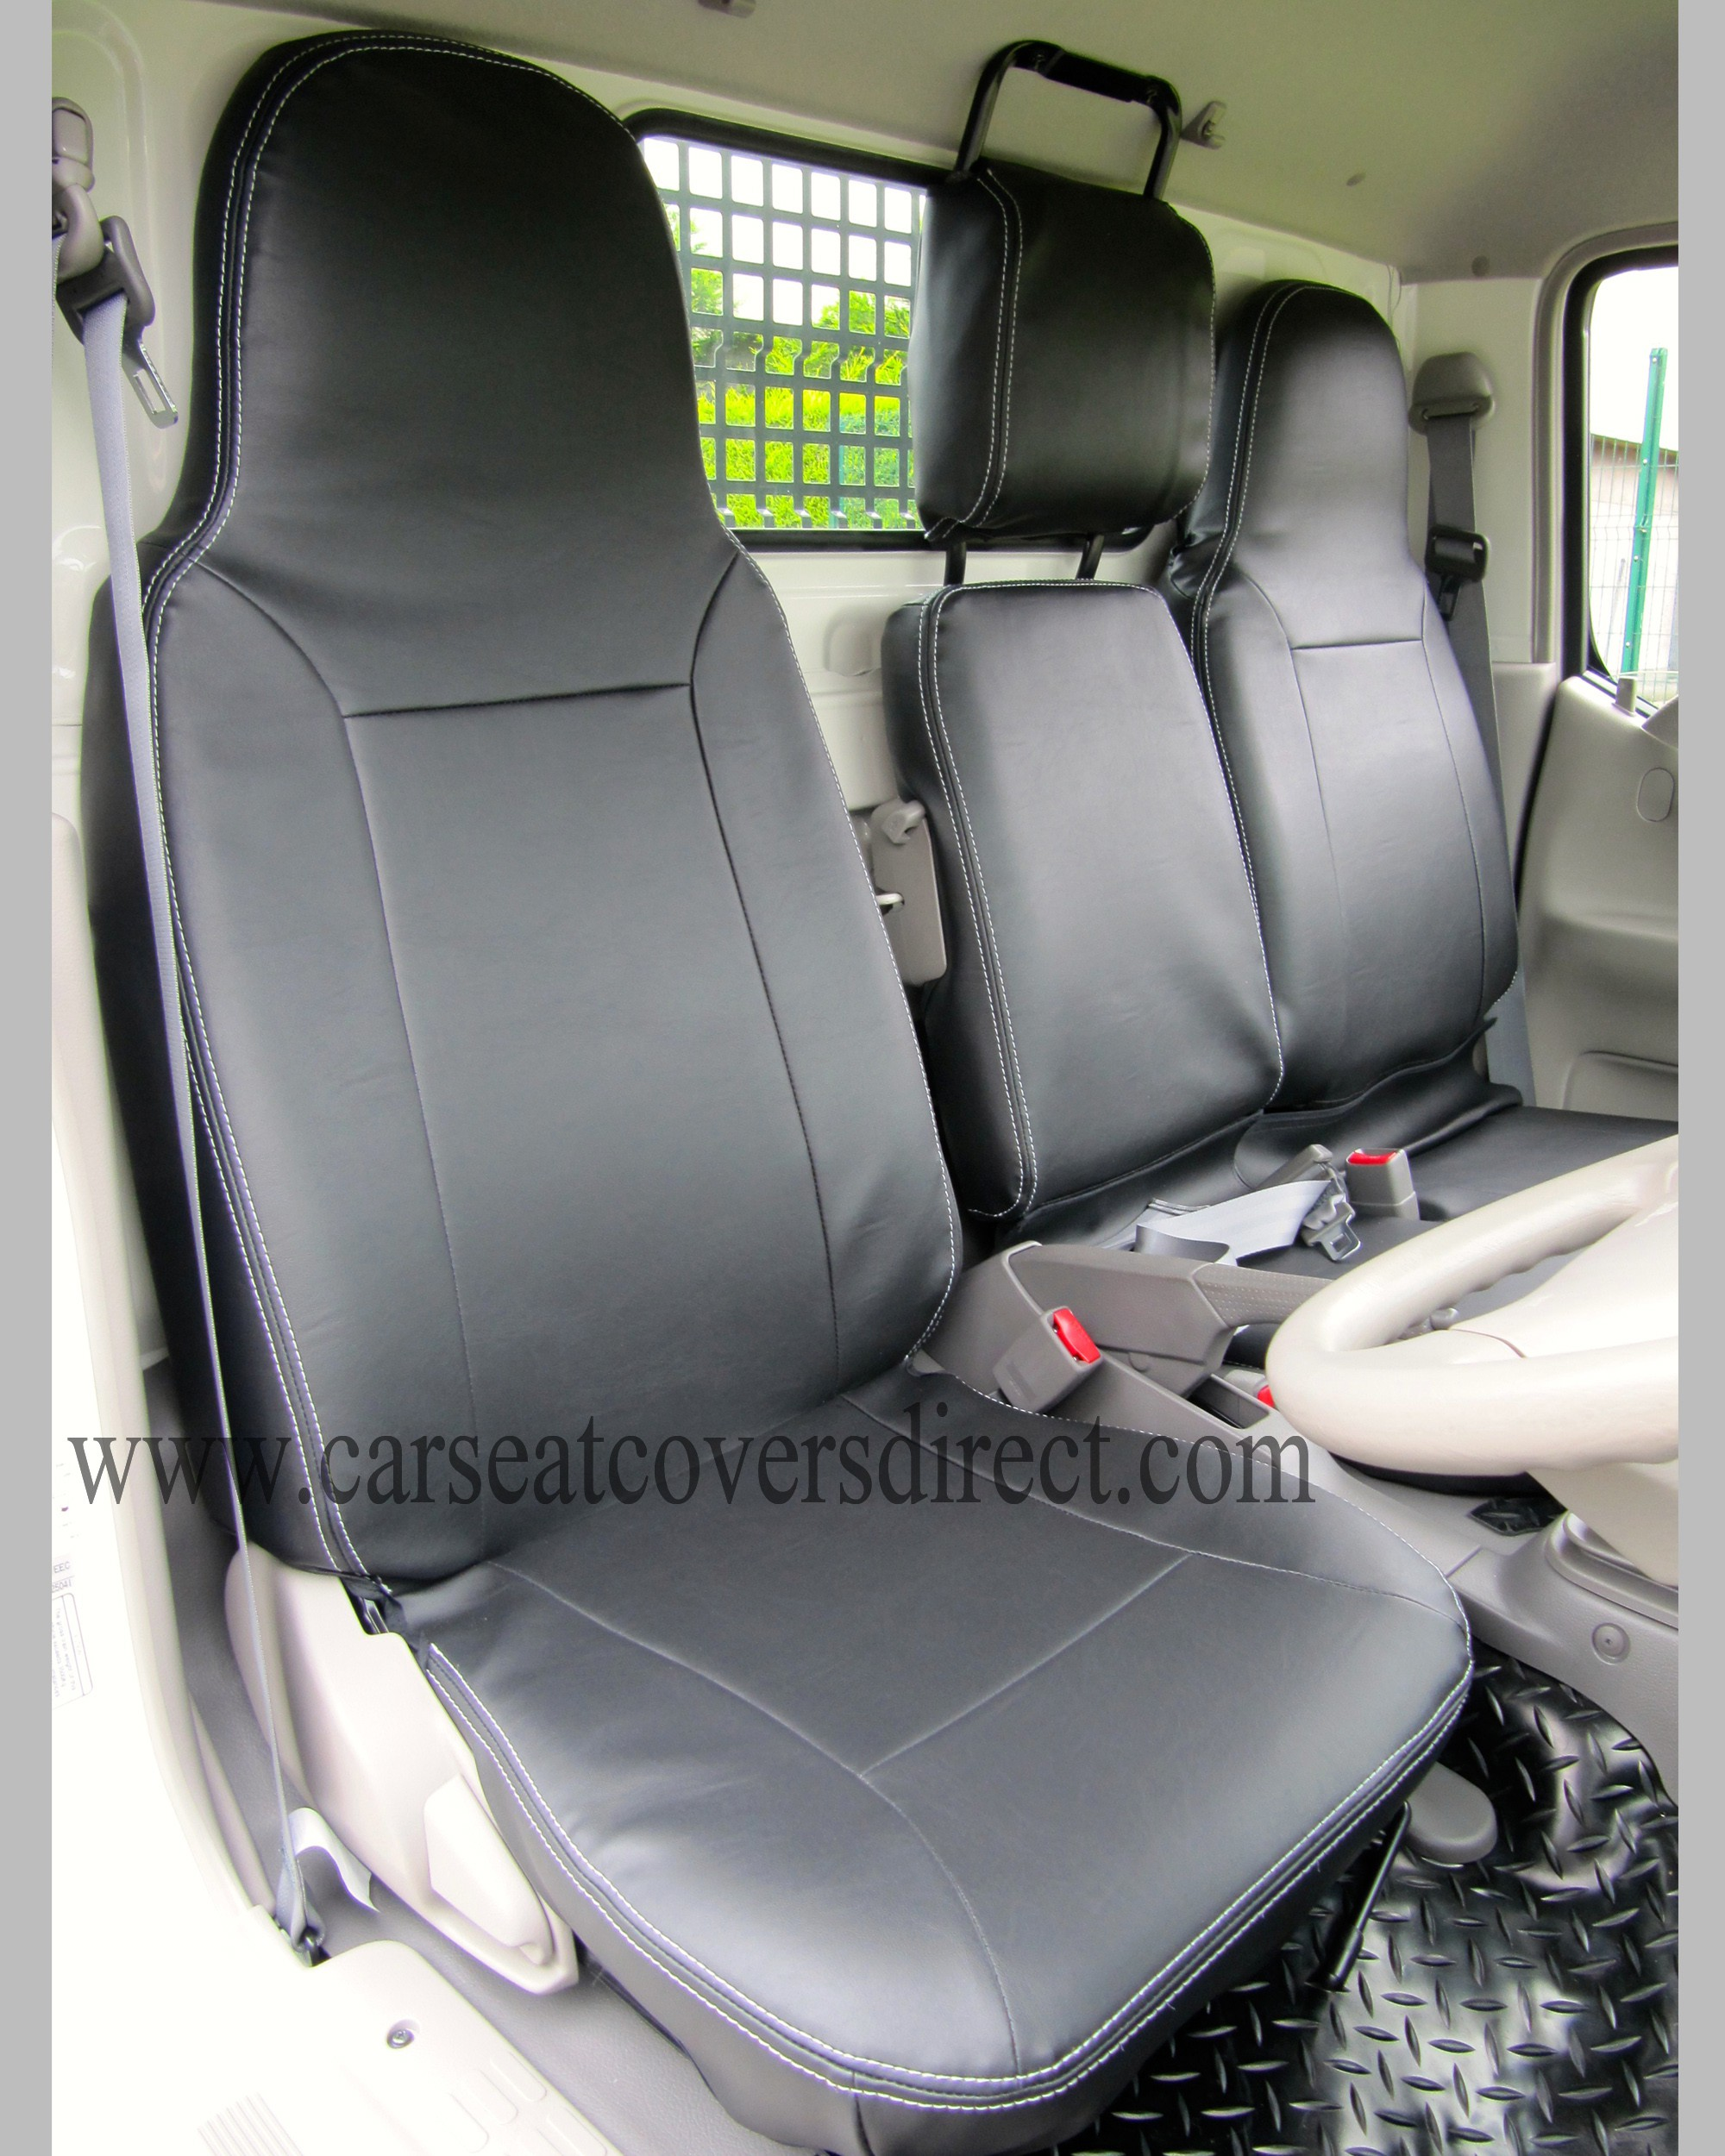 Toyota Dyna Seat Covers